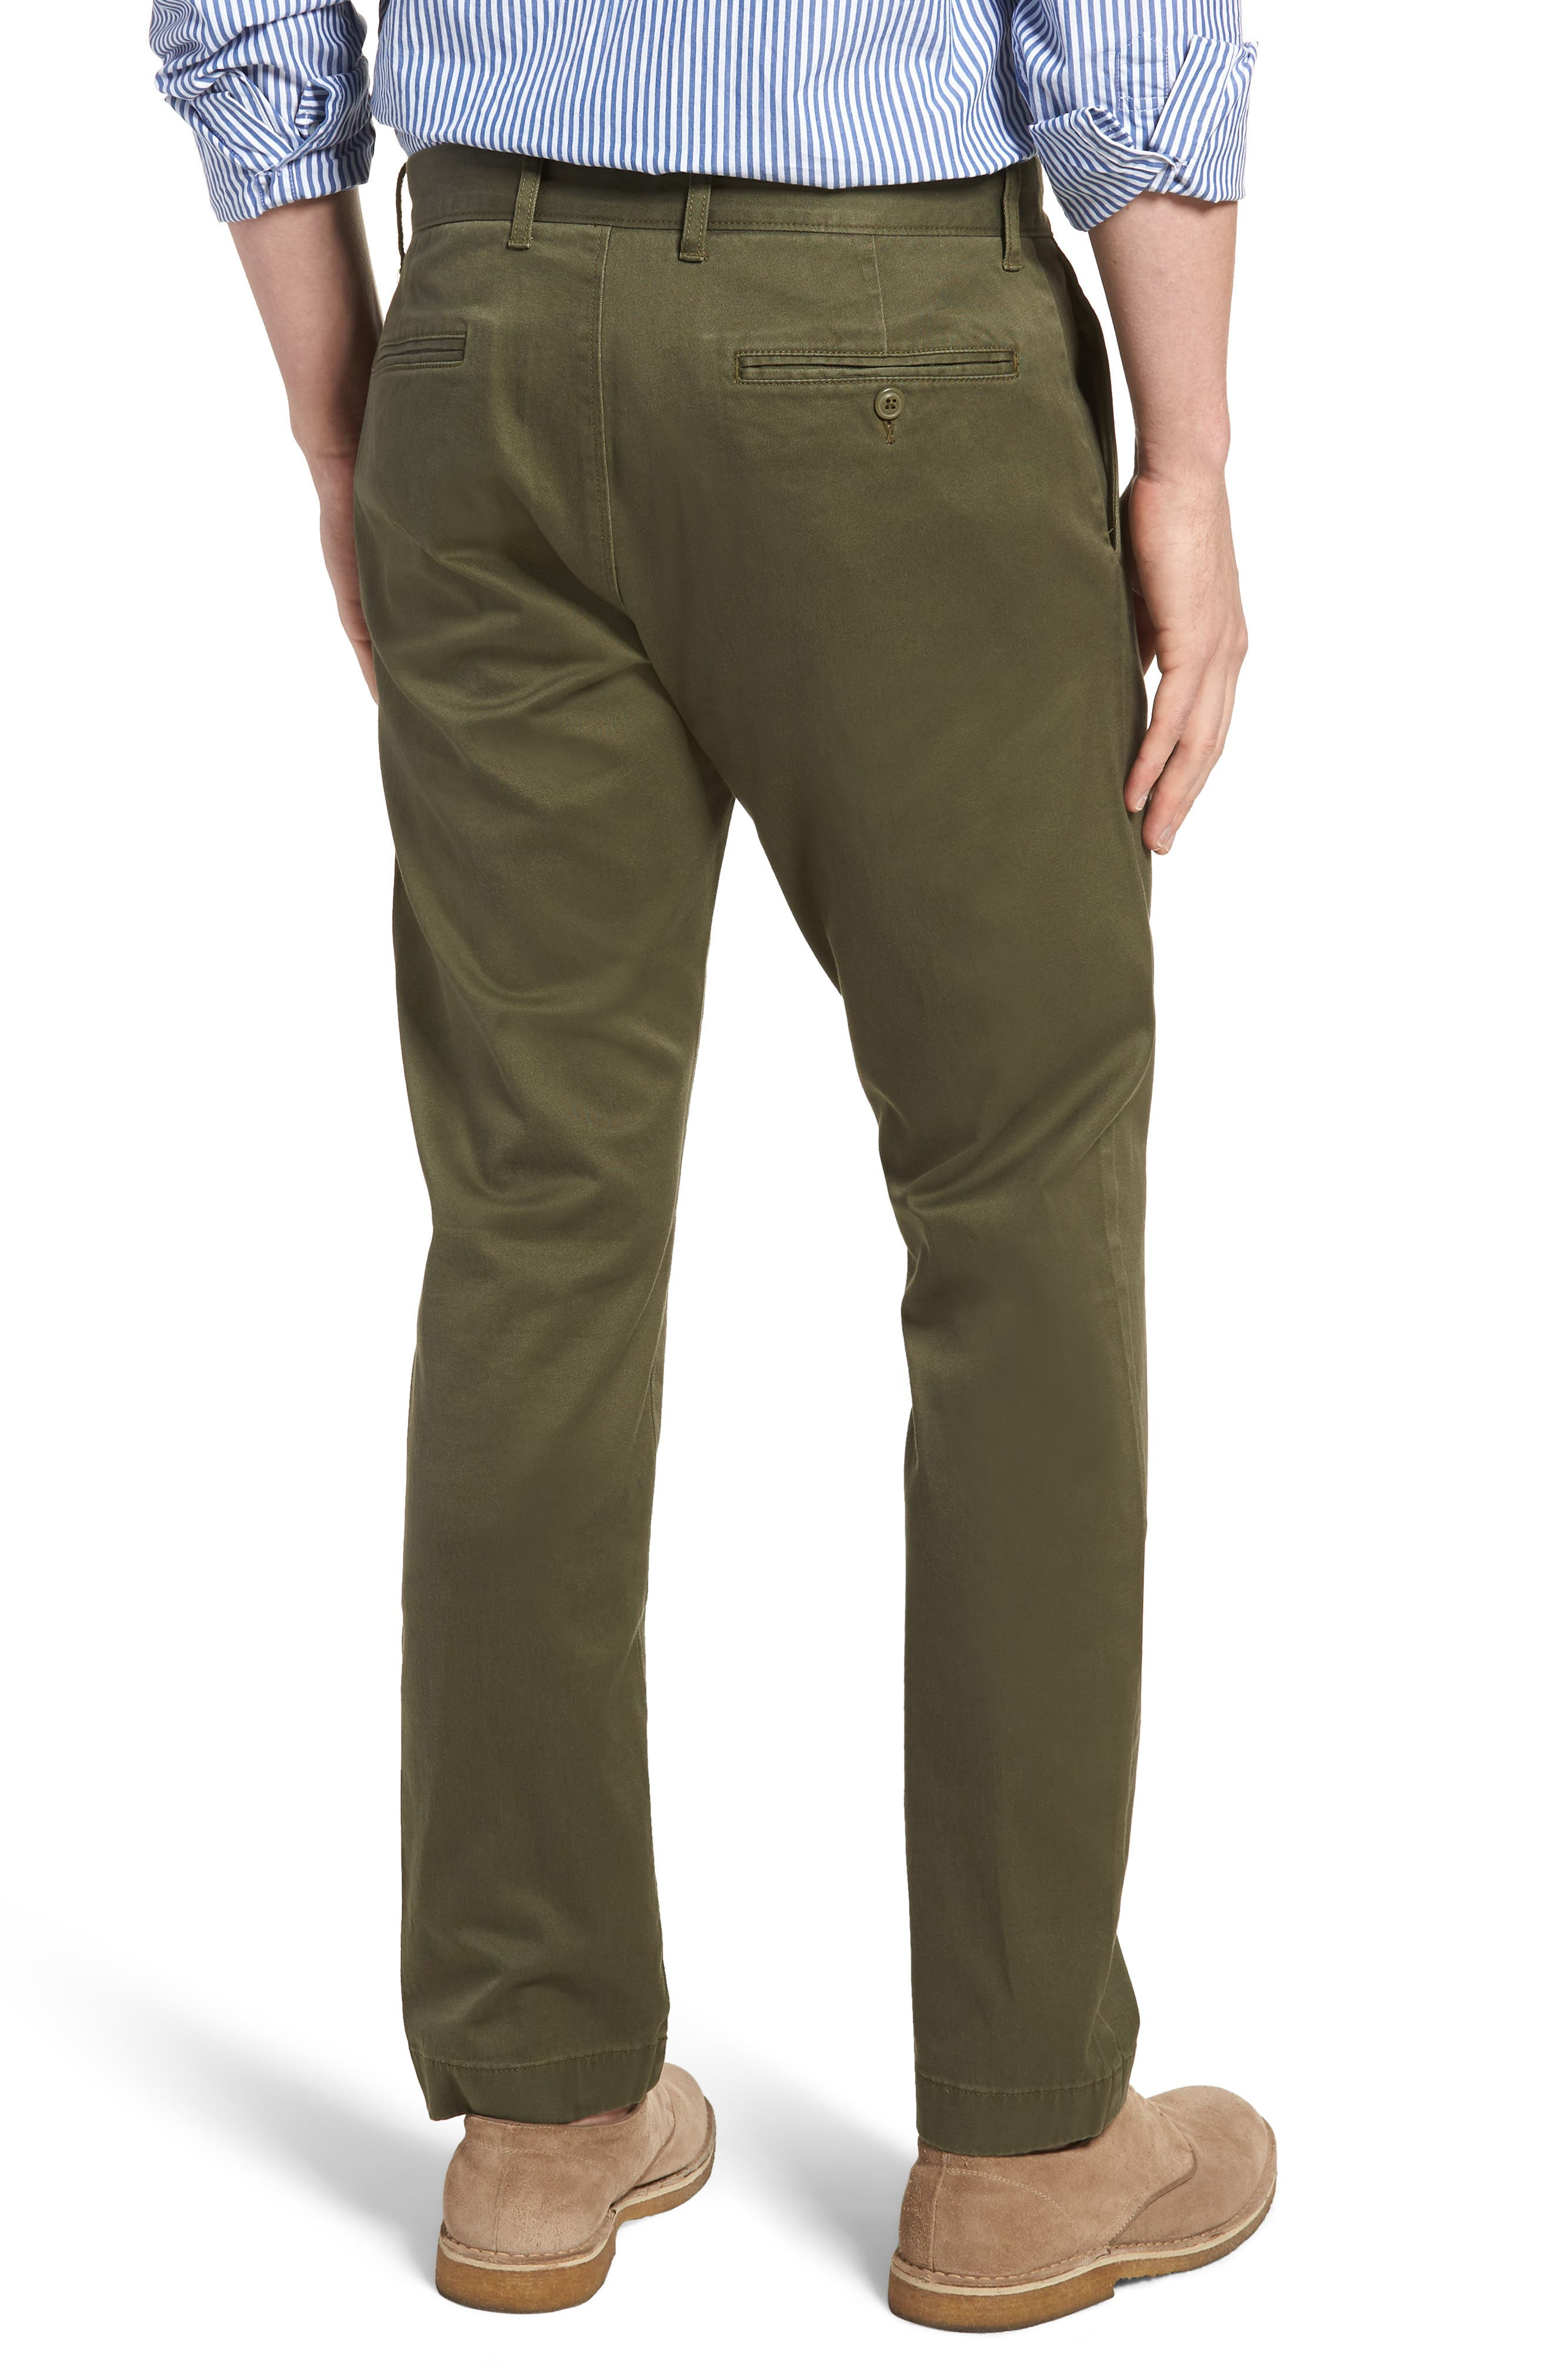 484 Slim Fit Stretch Chino Pants,                             Alternate thumbnail 19, color,